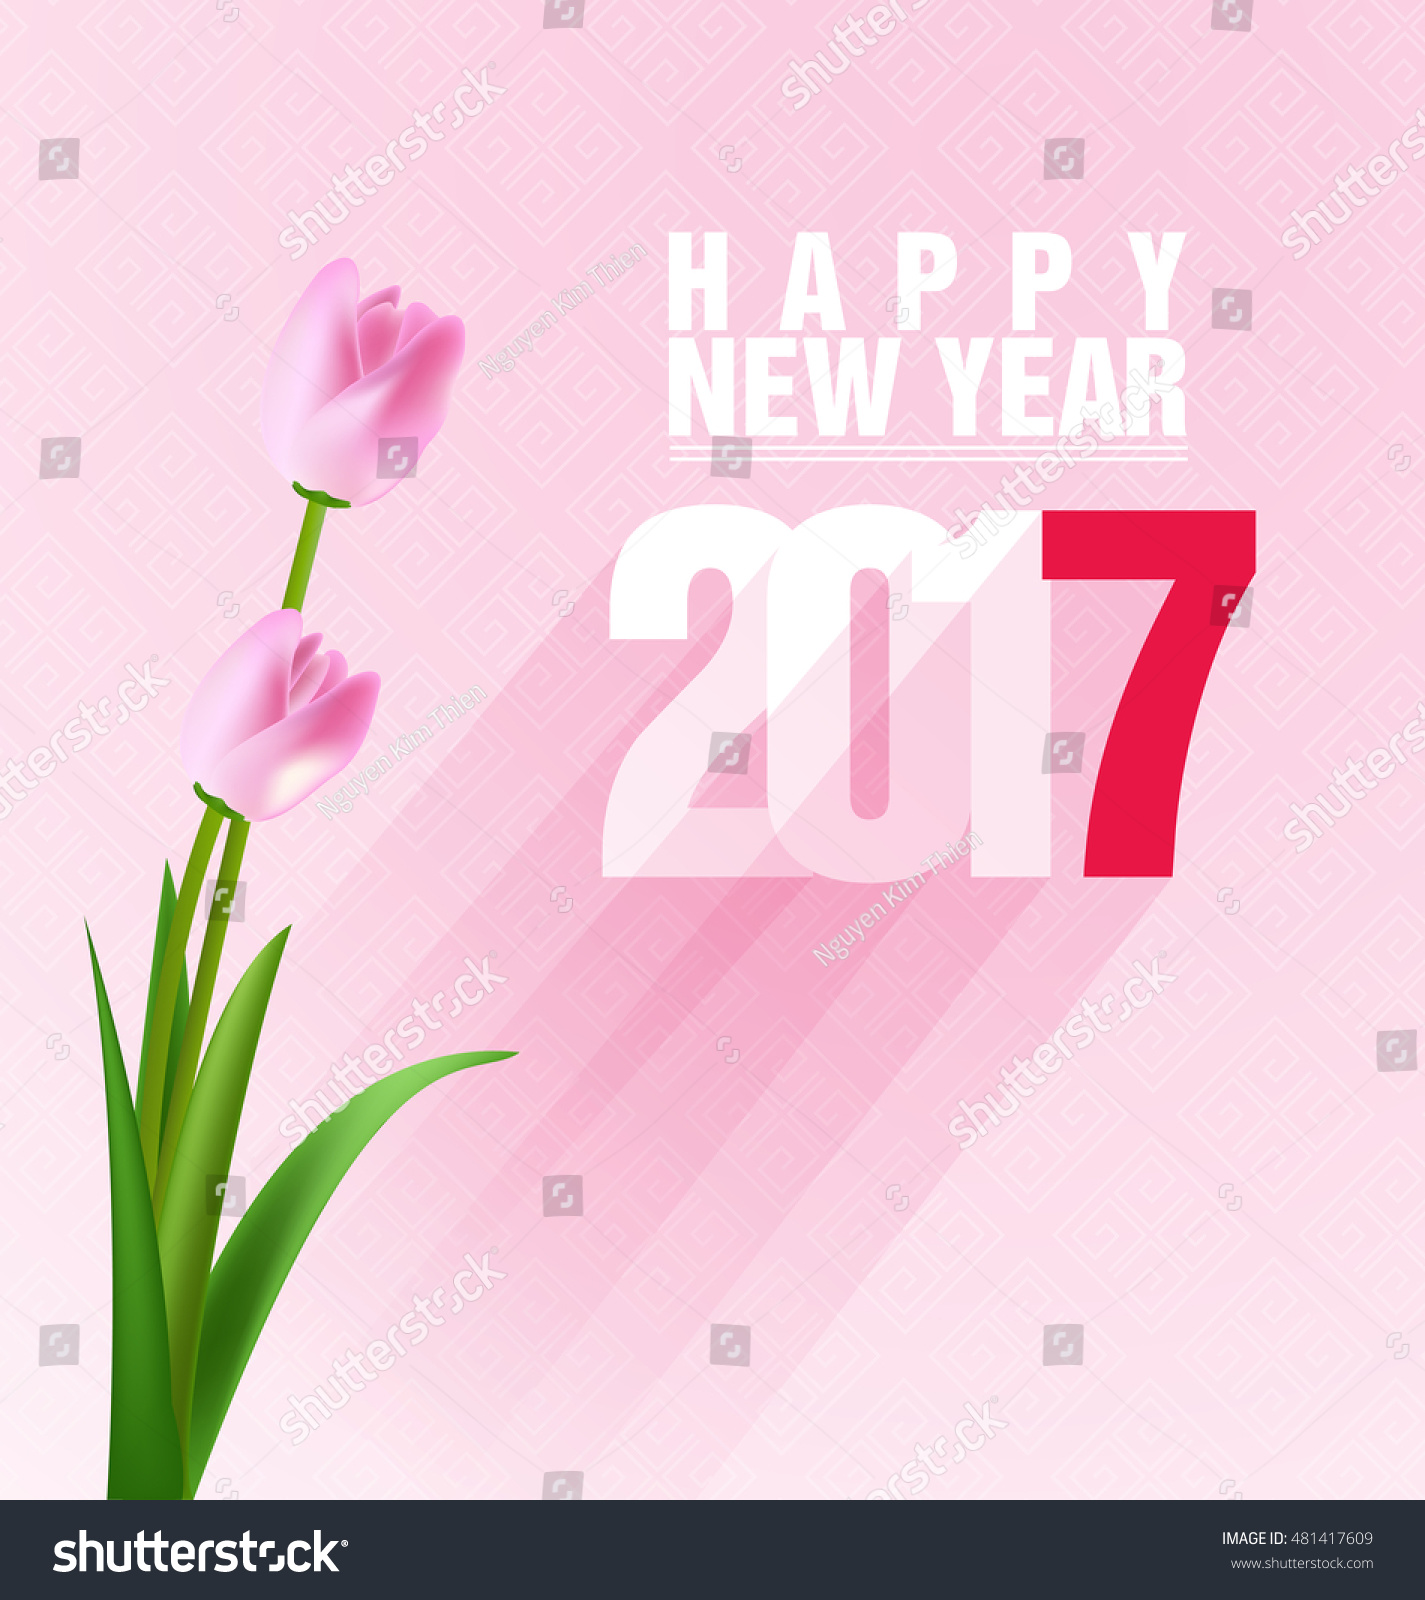 happy new year greeting card 2017 celebration background with flowers